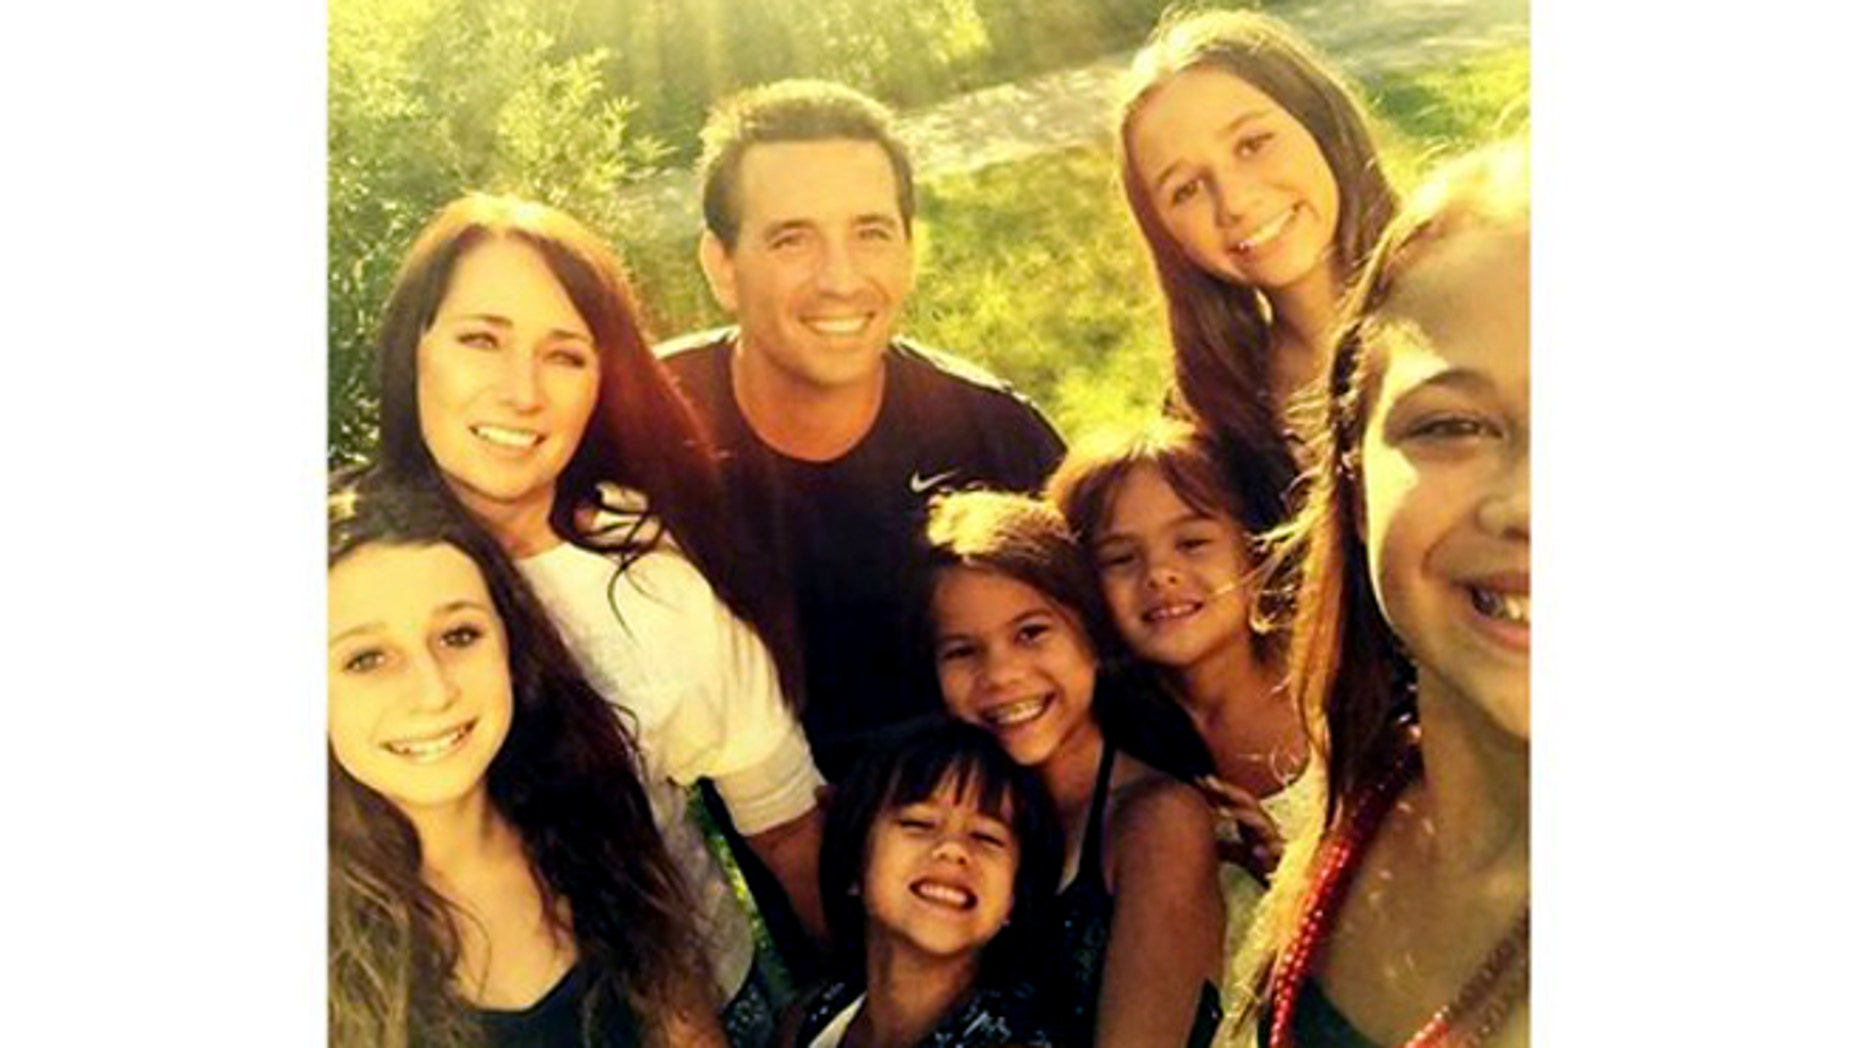 The Ruffino family welcomed Elizabeth Diamond's children into their home after her death.